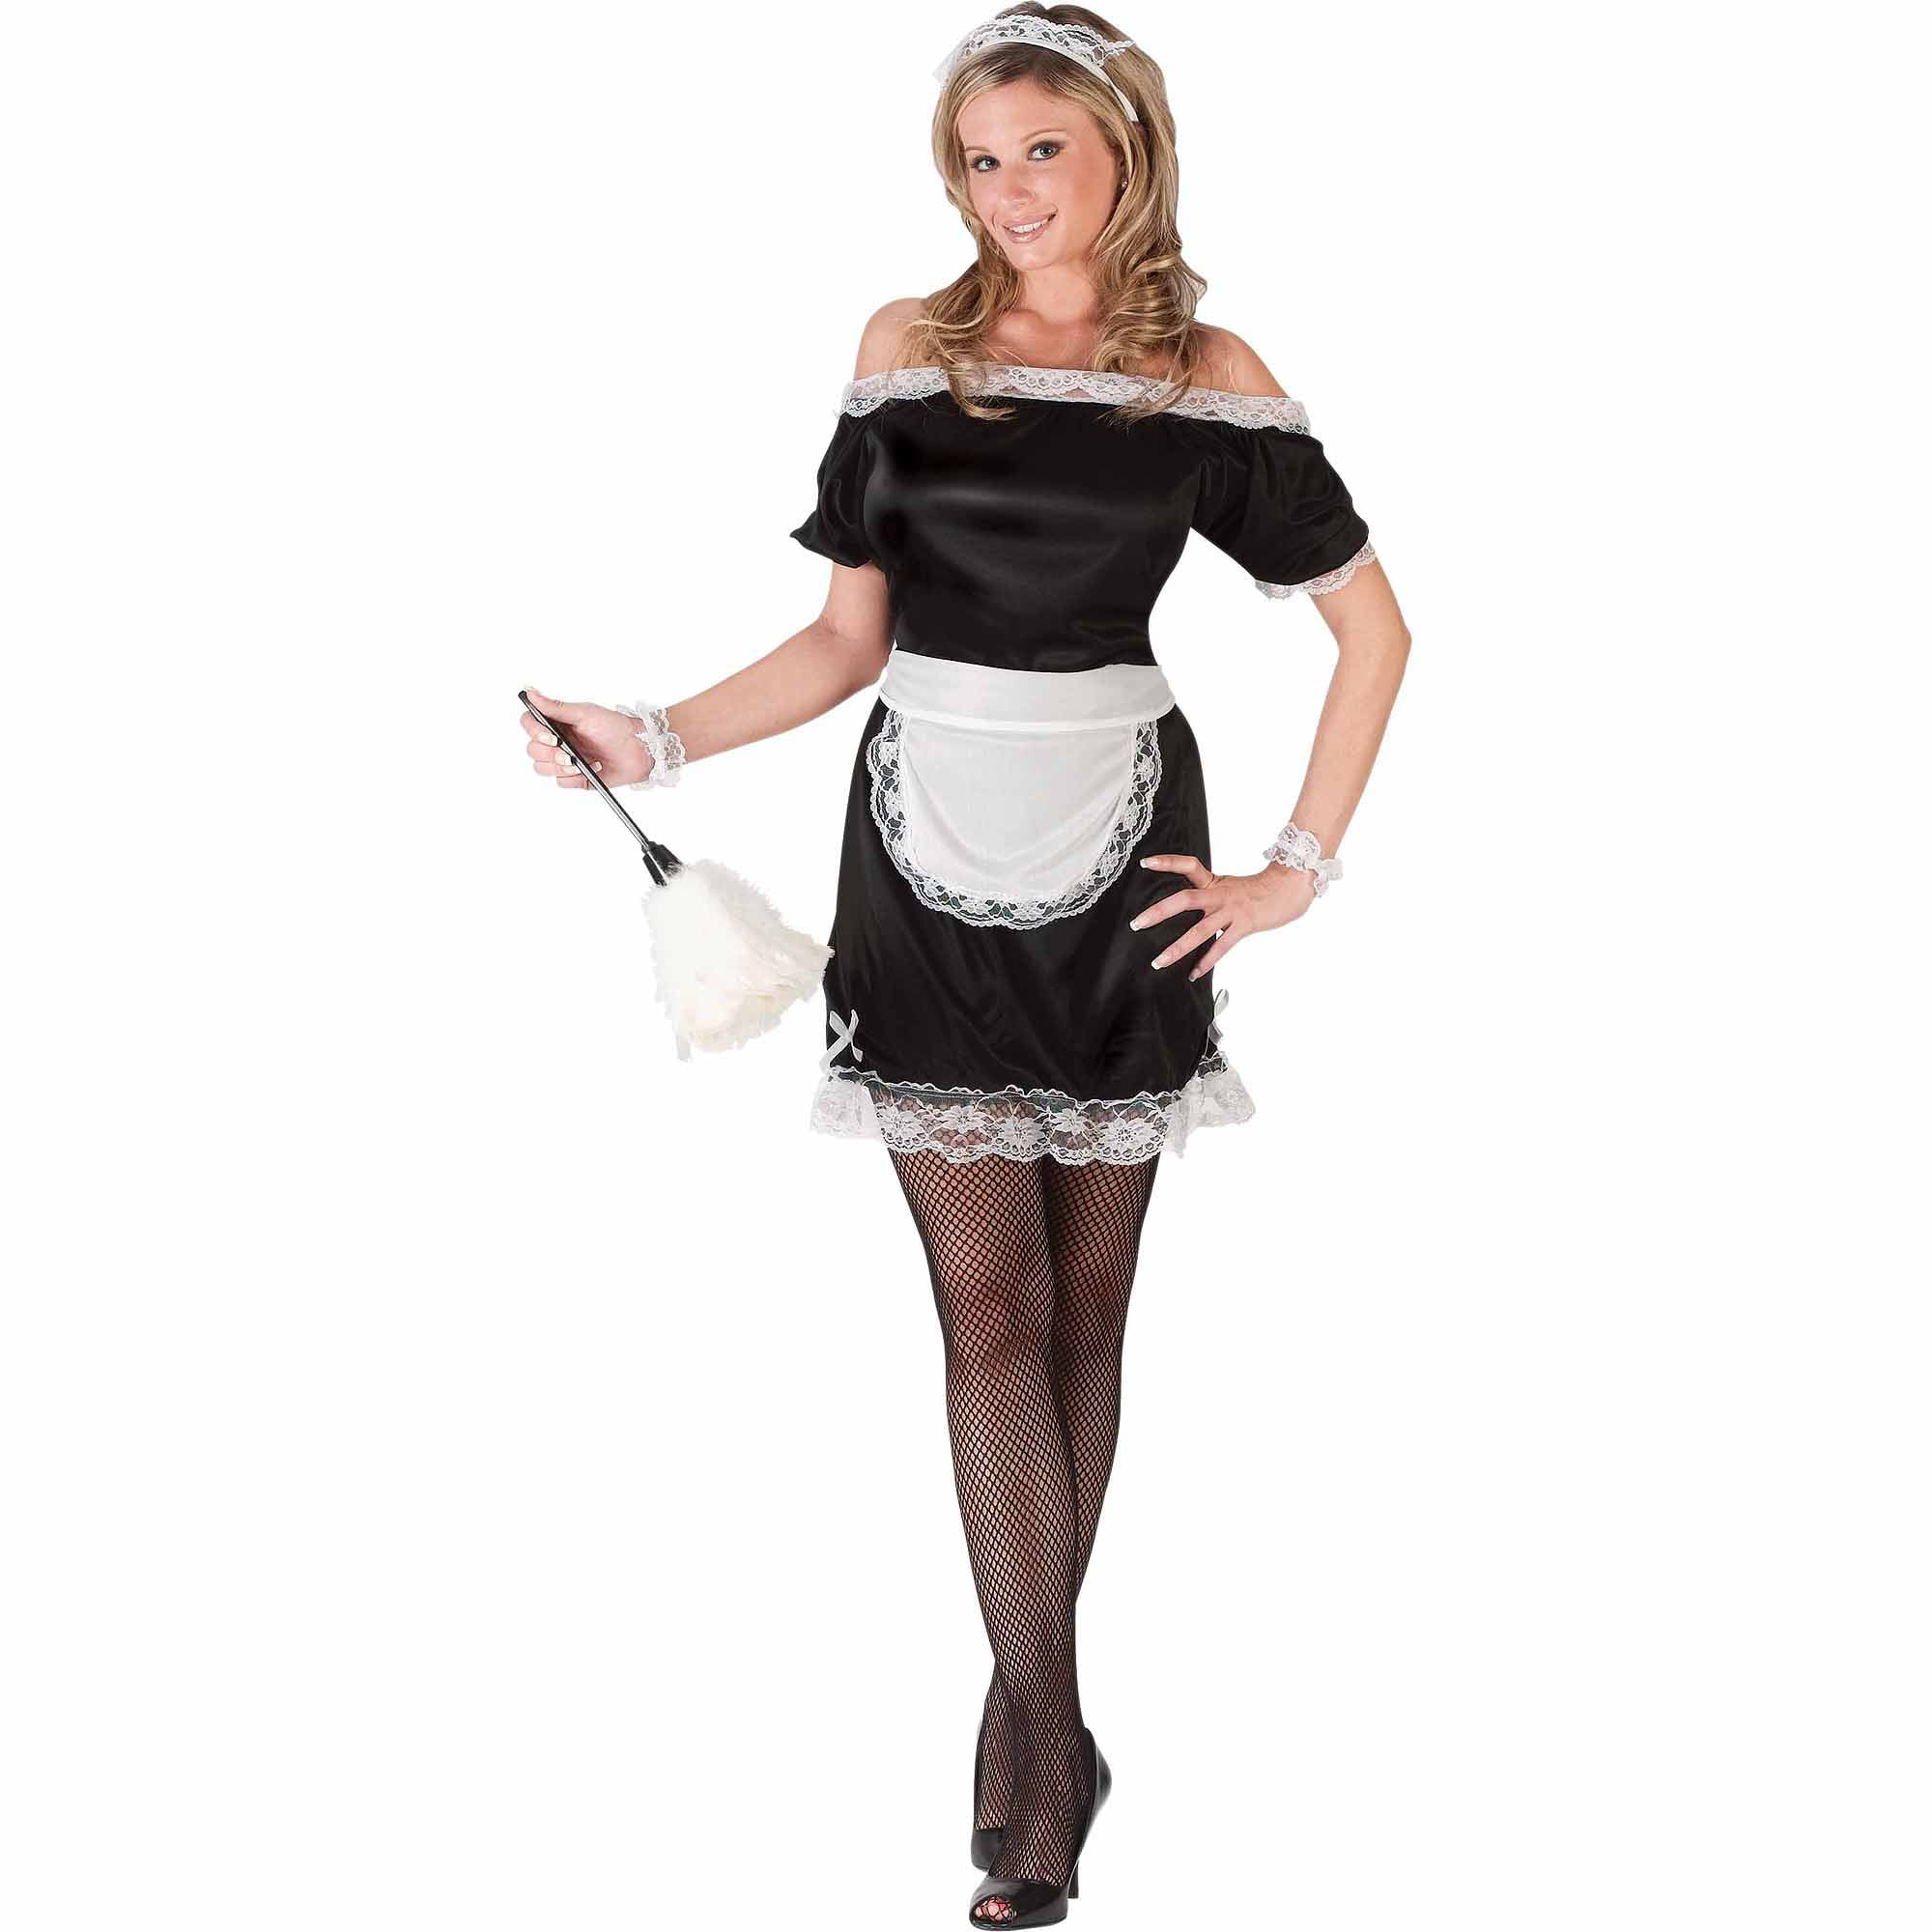 sc 1 st  Walmart & Fun World French Maid Adult Halloween Costume - Walmart.com